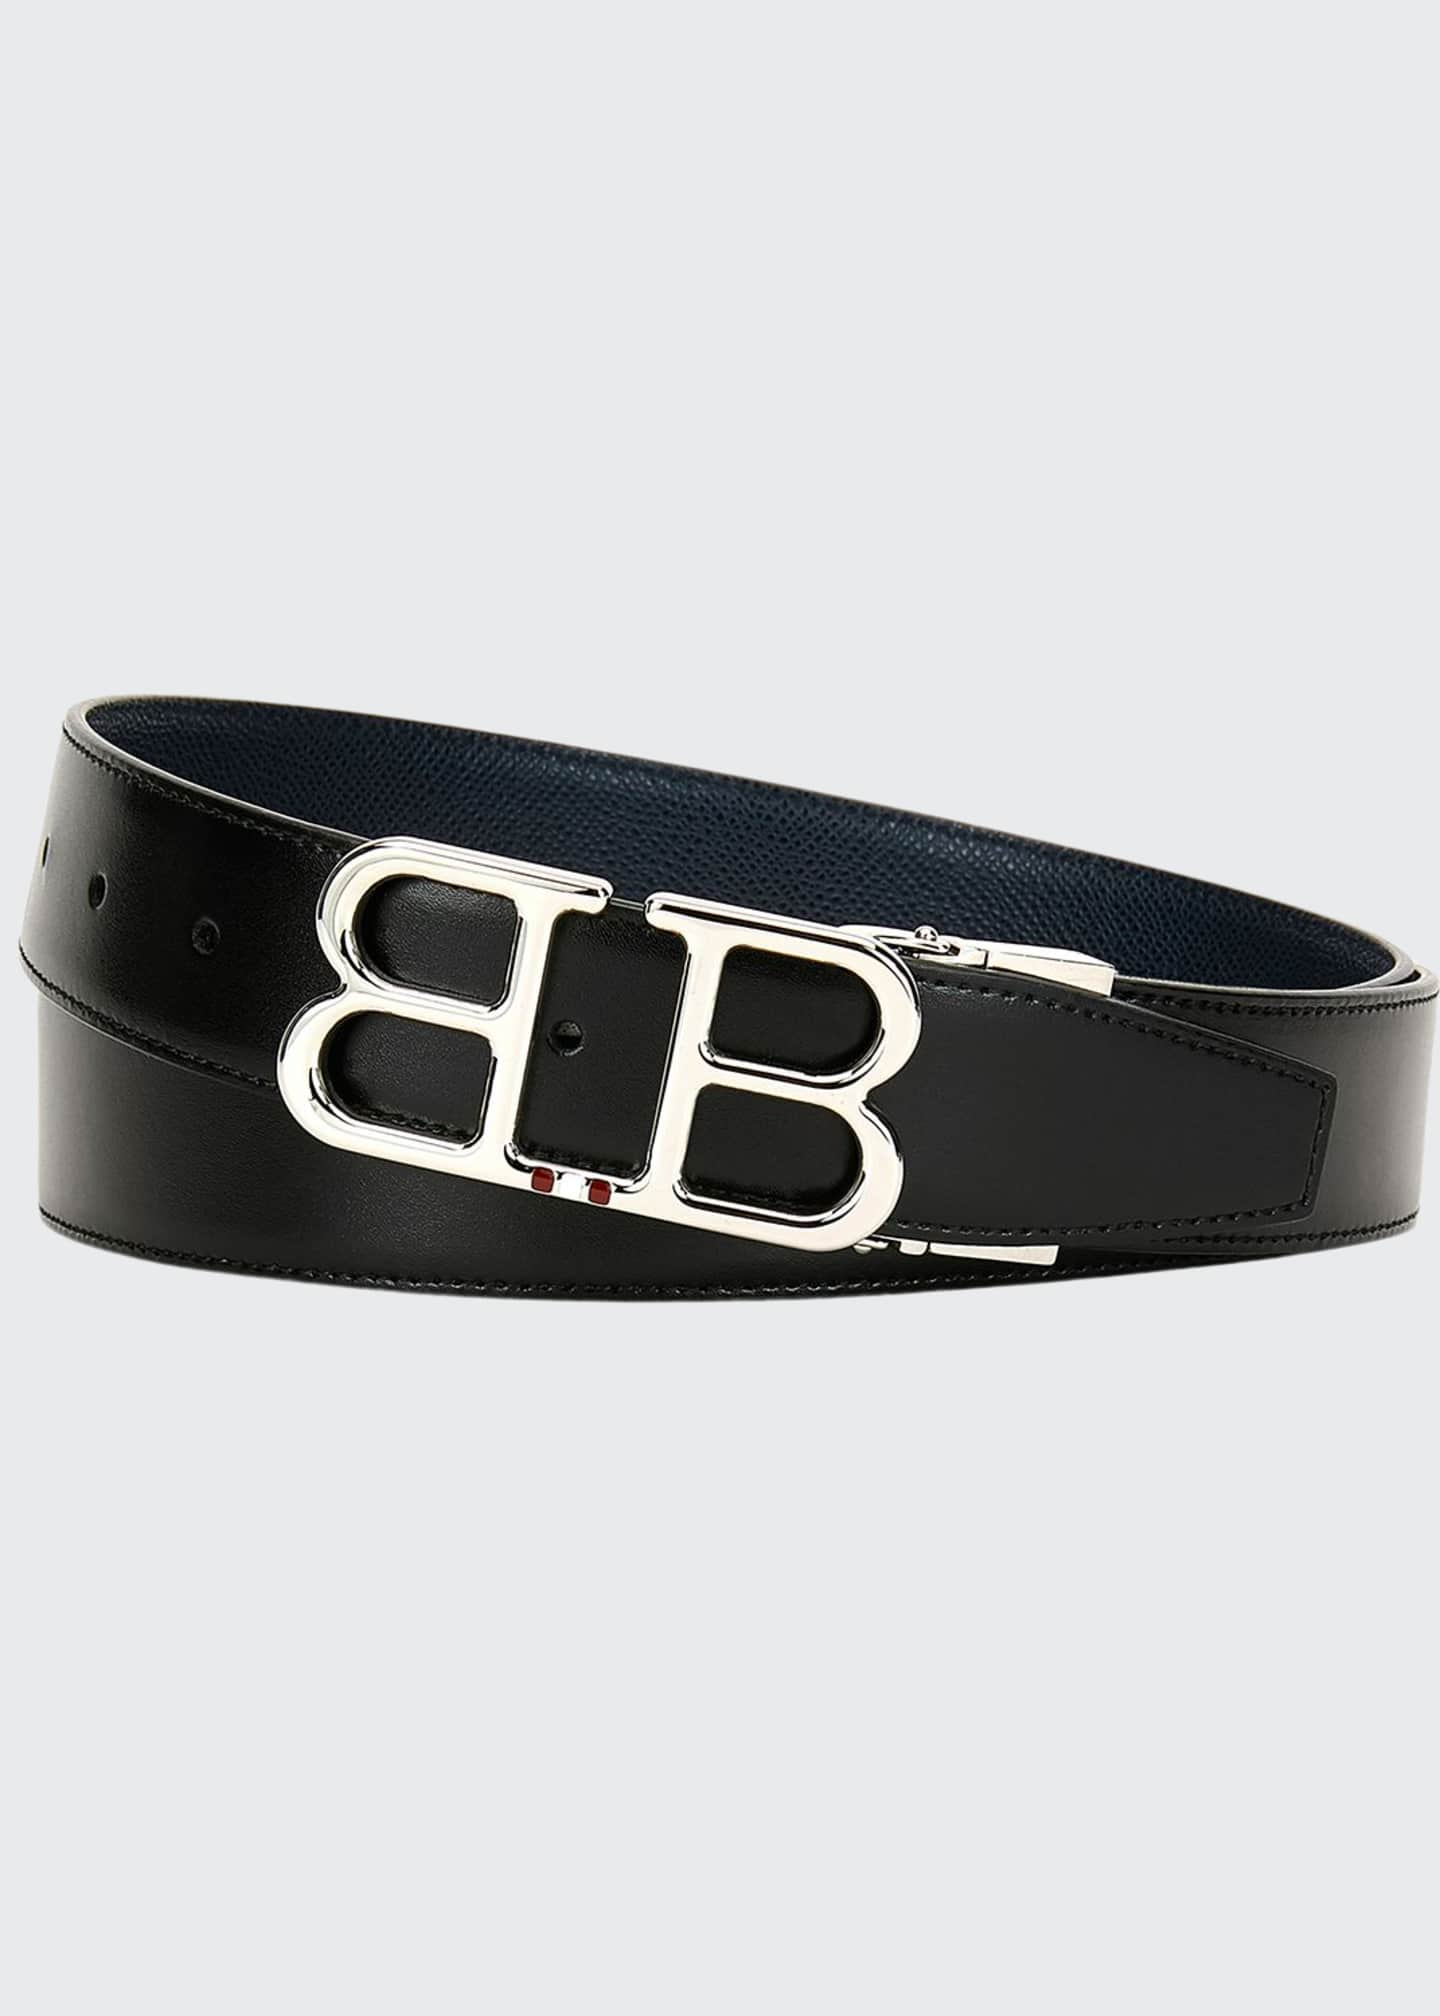 Image 1 of 1: Men's Britt B-Buckle Belt - Chrome Hardware